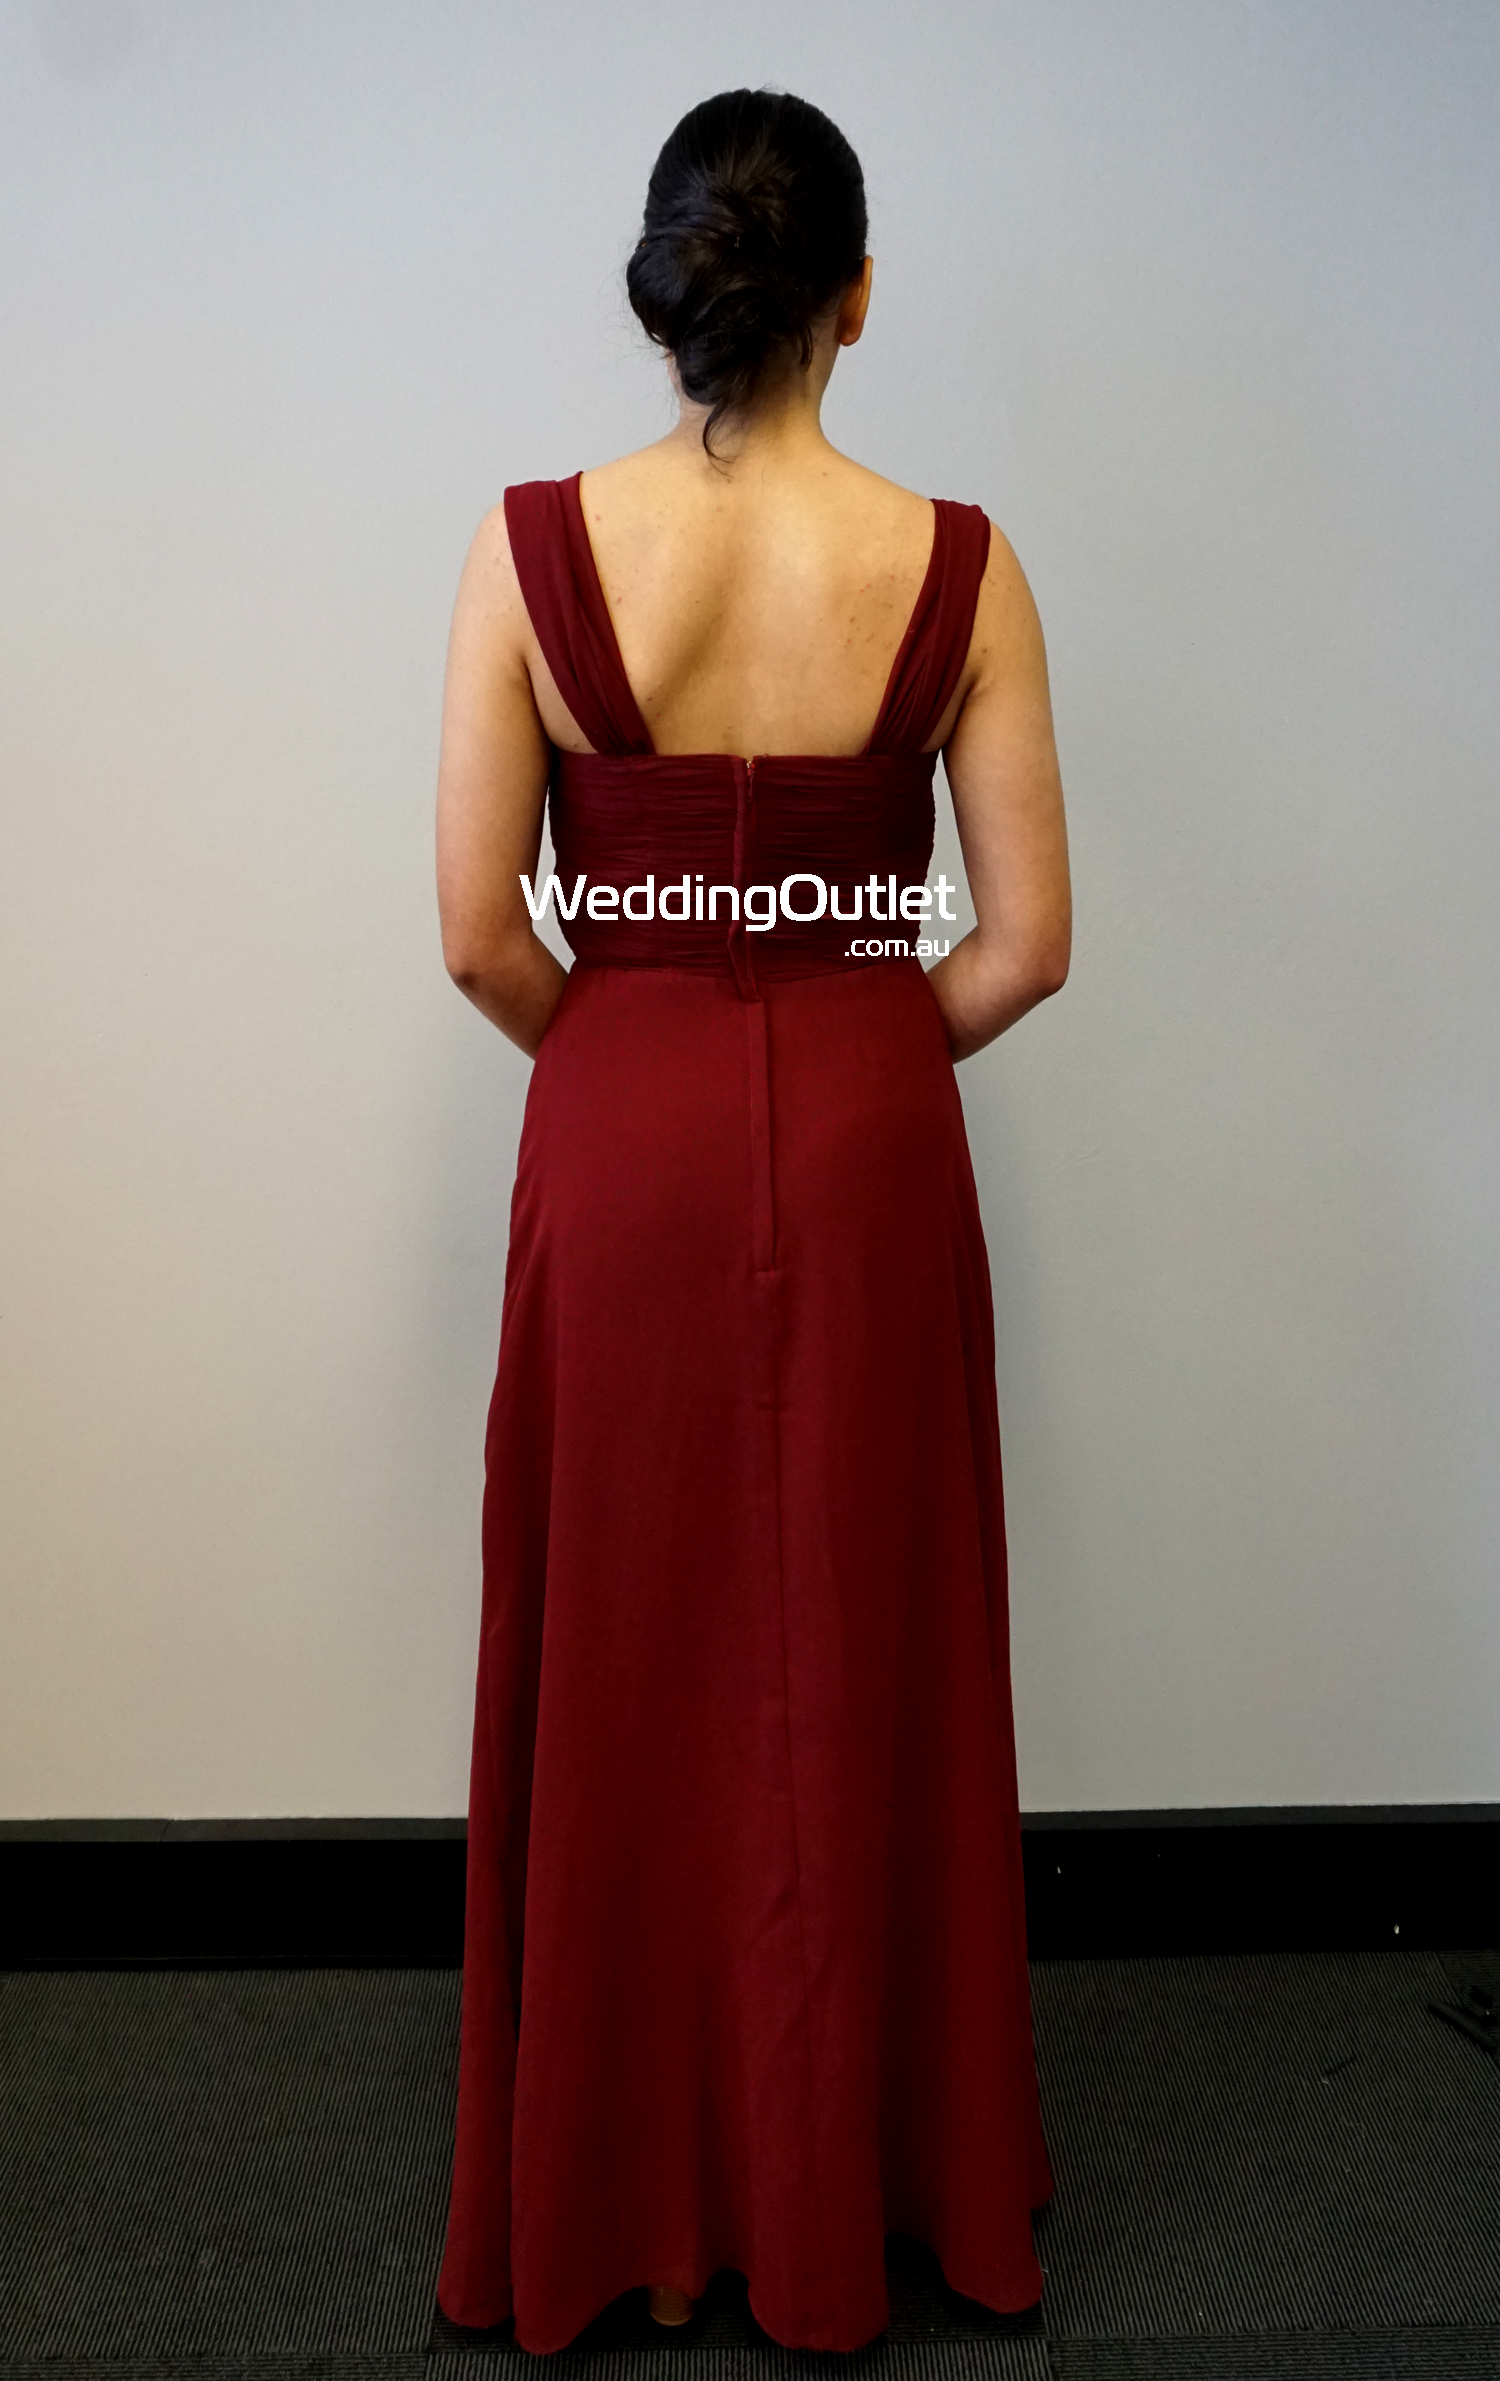 Burgundy Maroon Bridesmaid Dress Afa101 Weddingoutlet